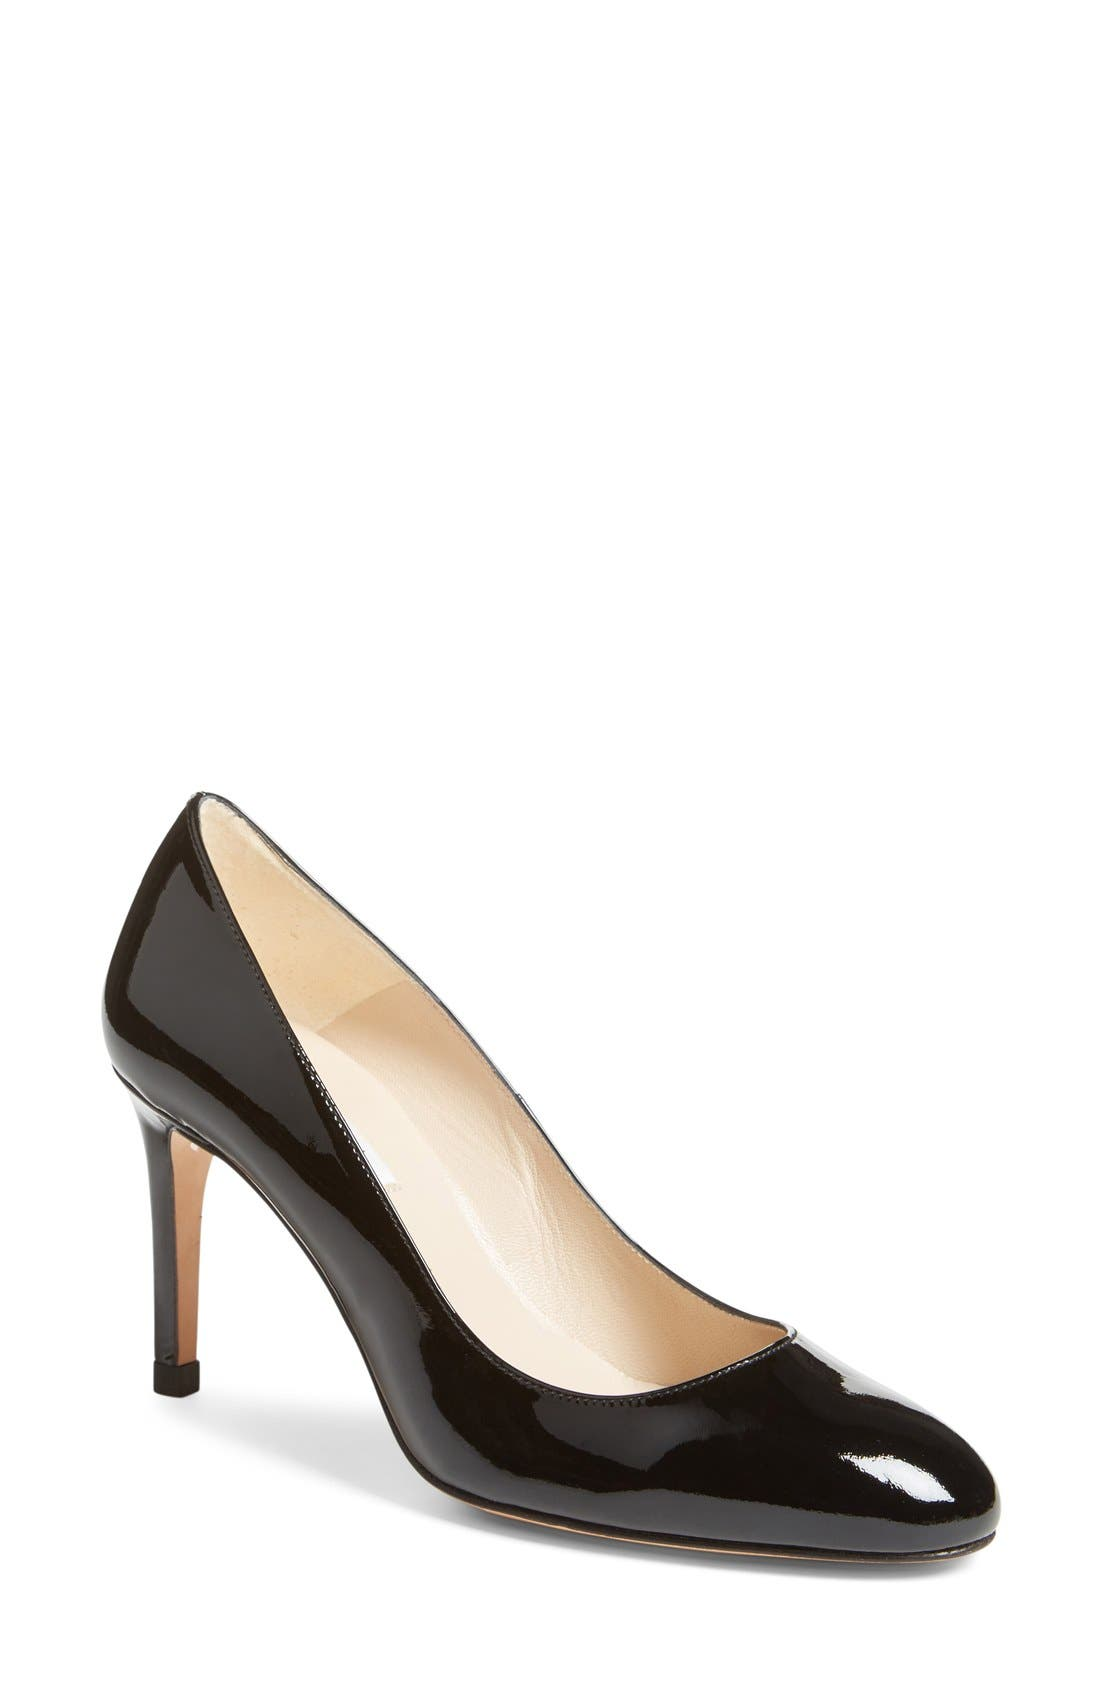 'Sasha' Pump,                         Main,                         color, 002